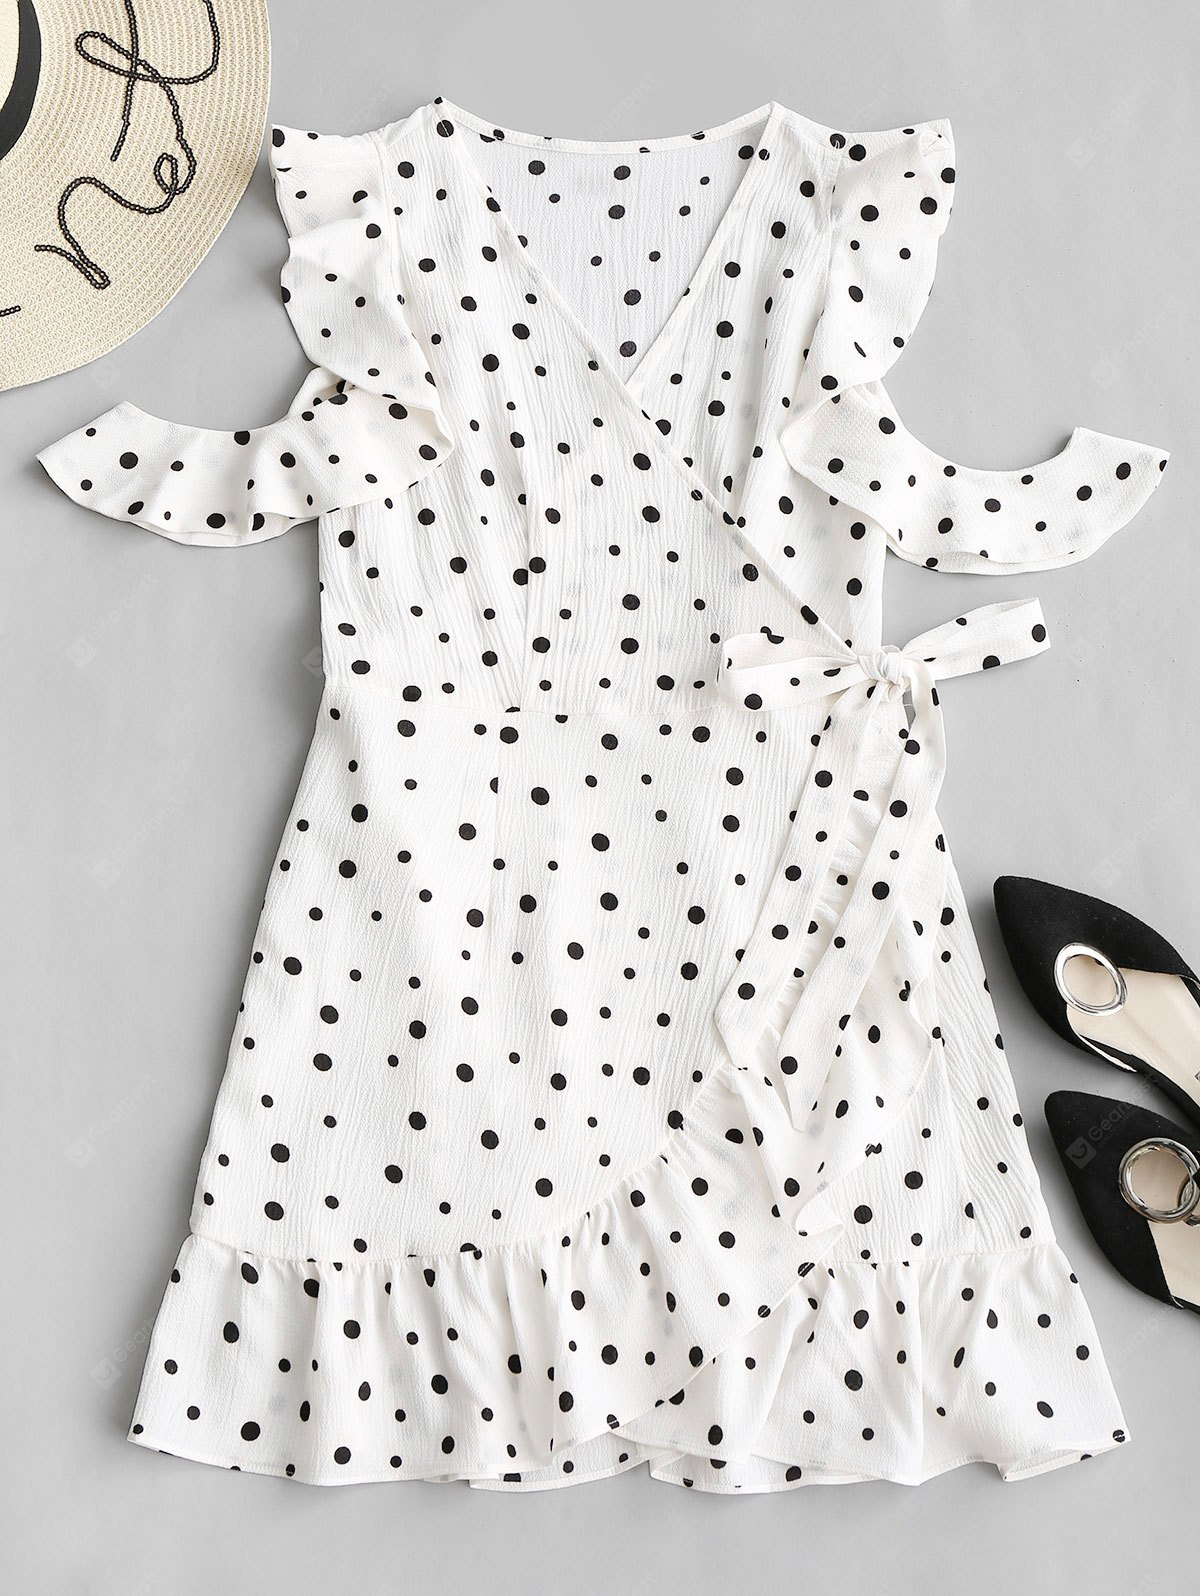 OpenShoulder Frills Polka Dot Mini Dress